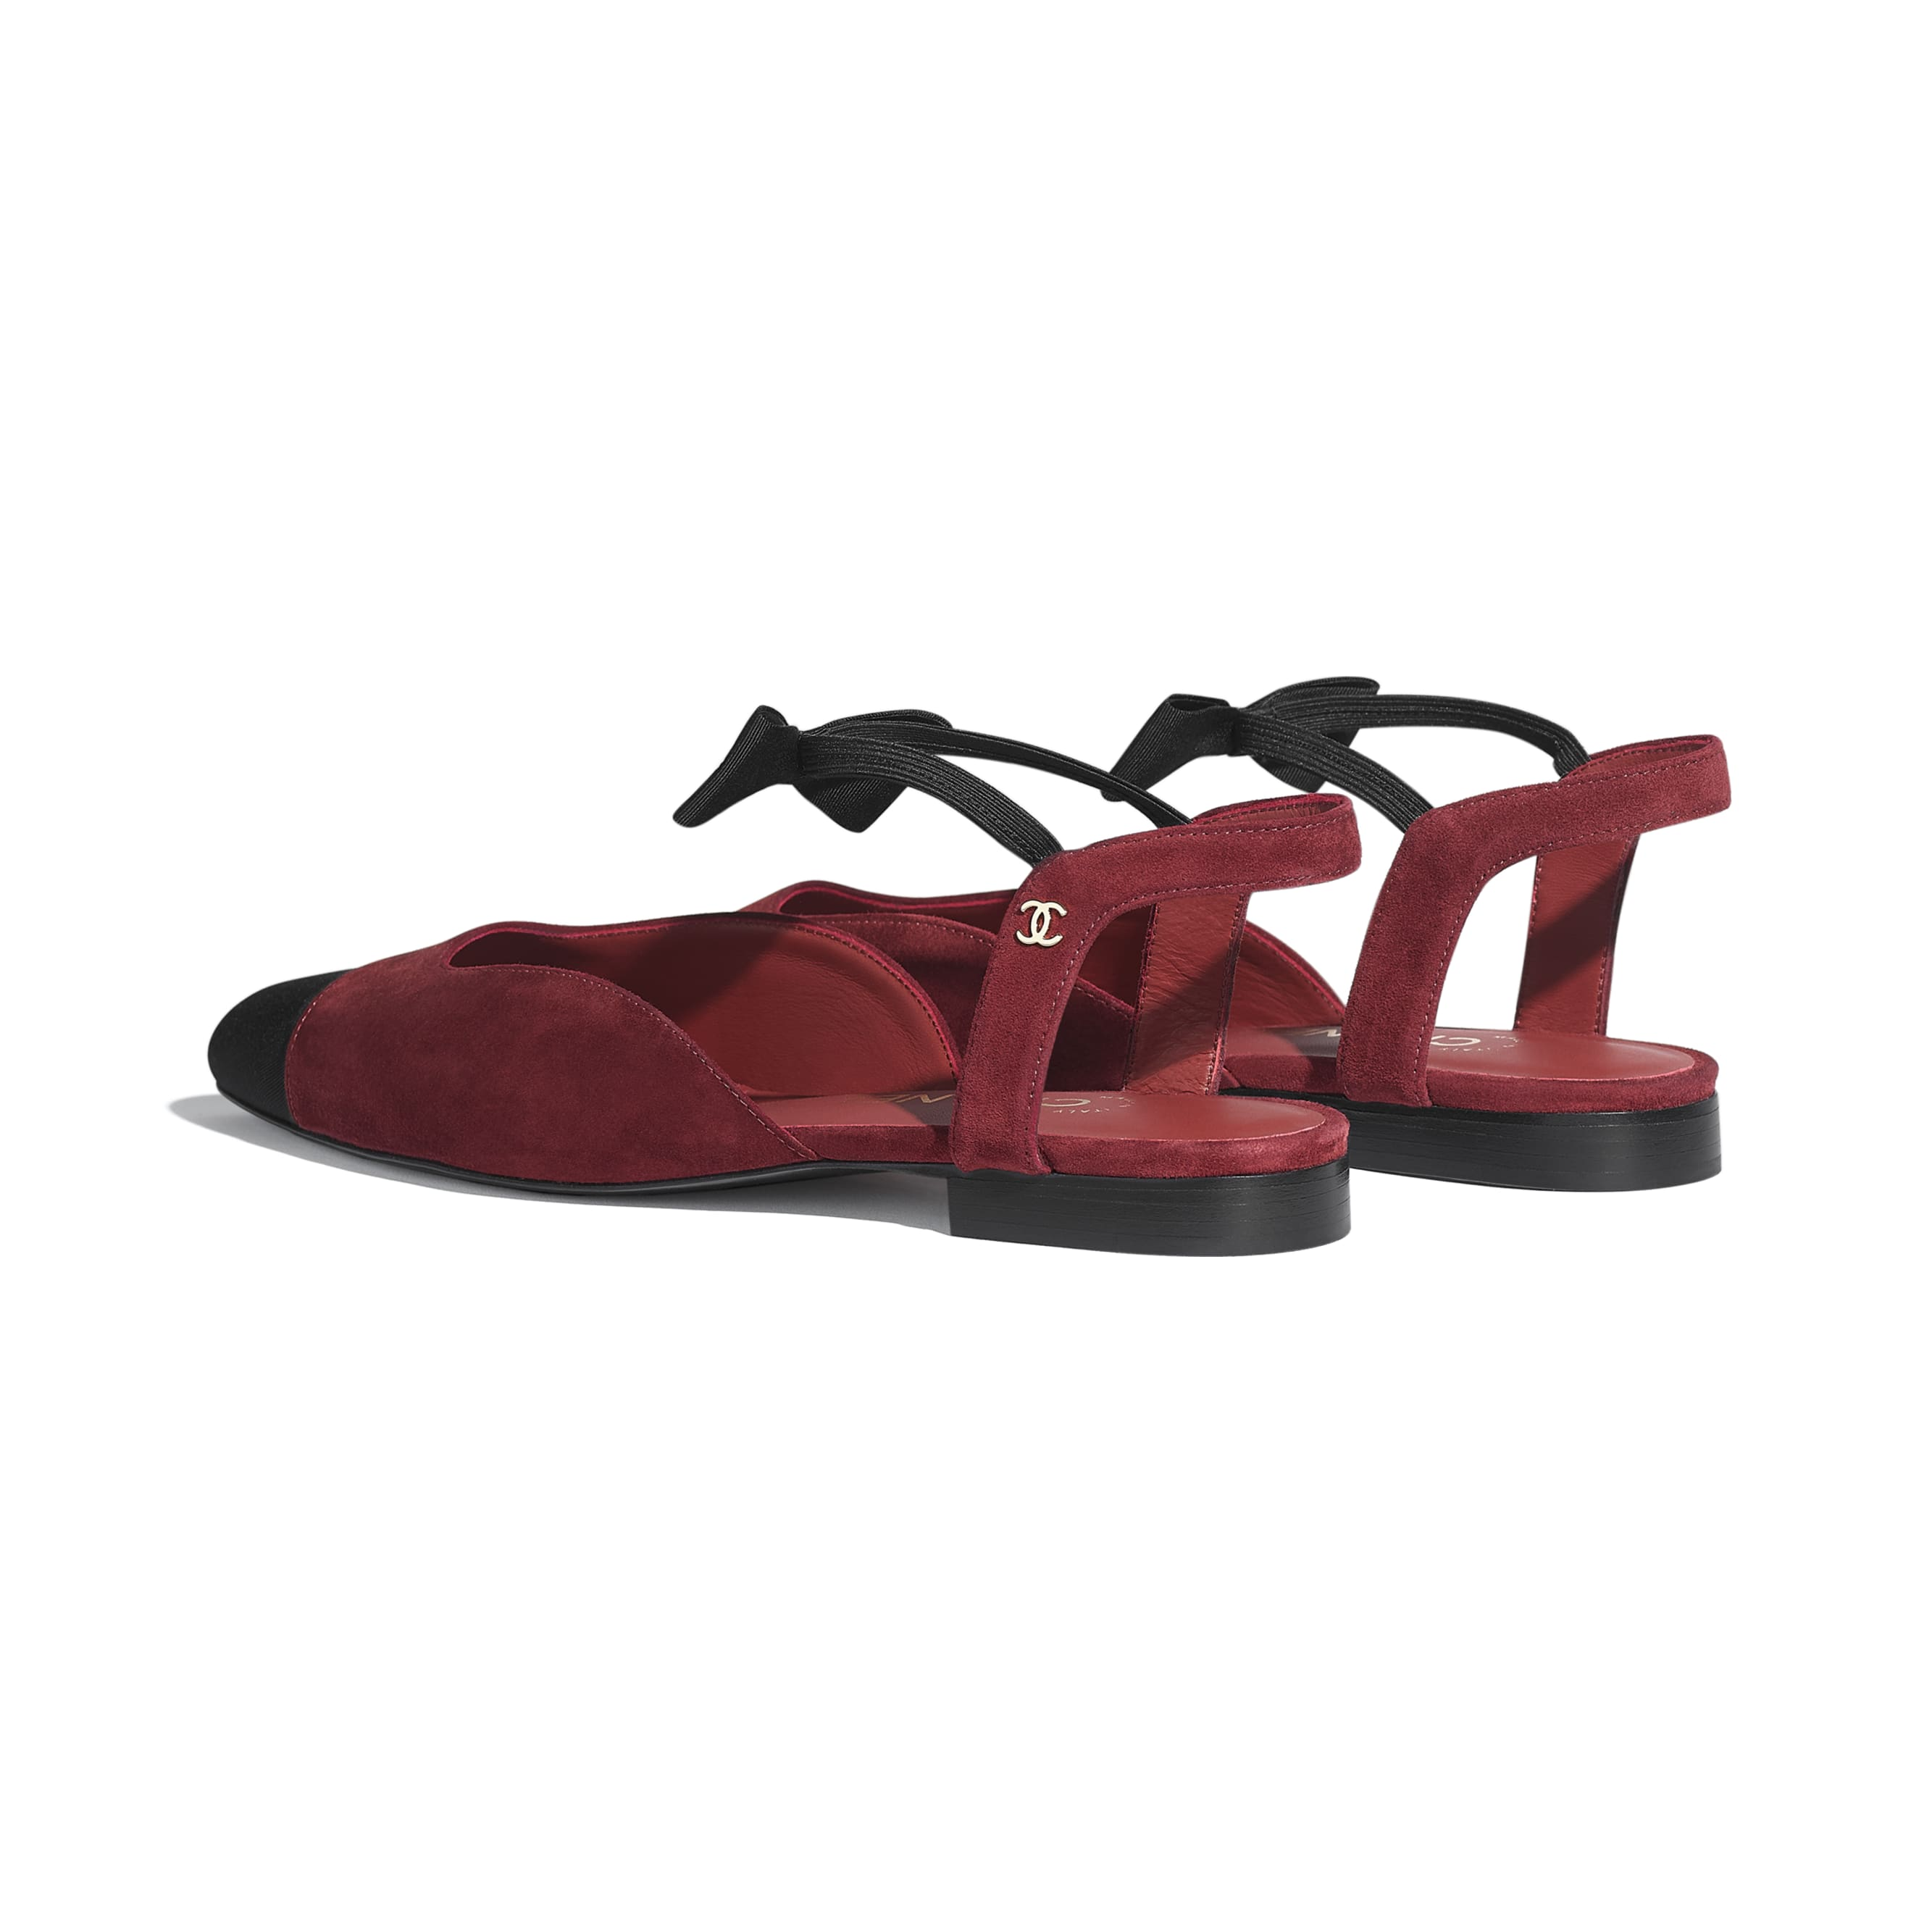 Mary Janes  - Burgundy & Black - Suede Calfskin & Grosgrain - CHANEL - Other view - see standard sized version